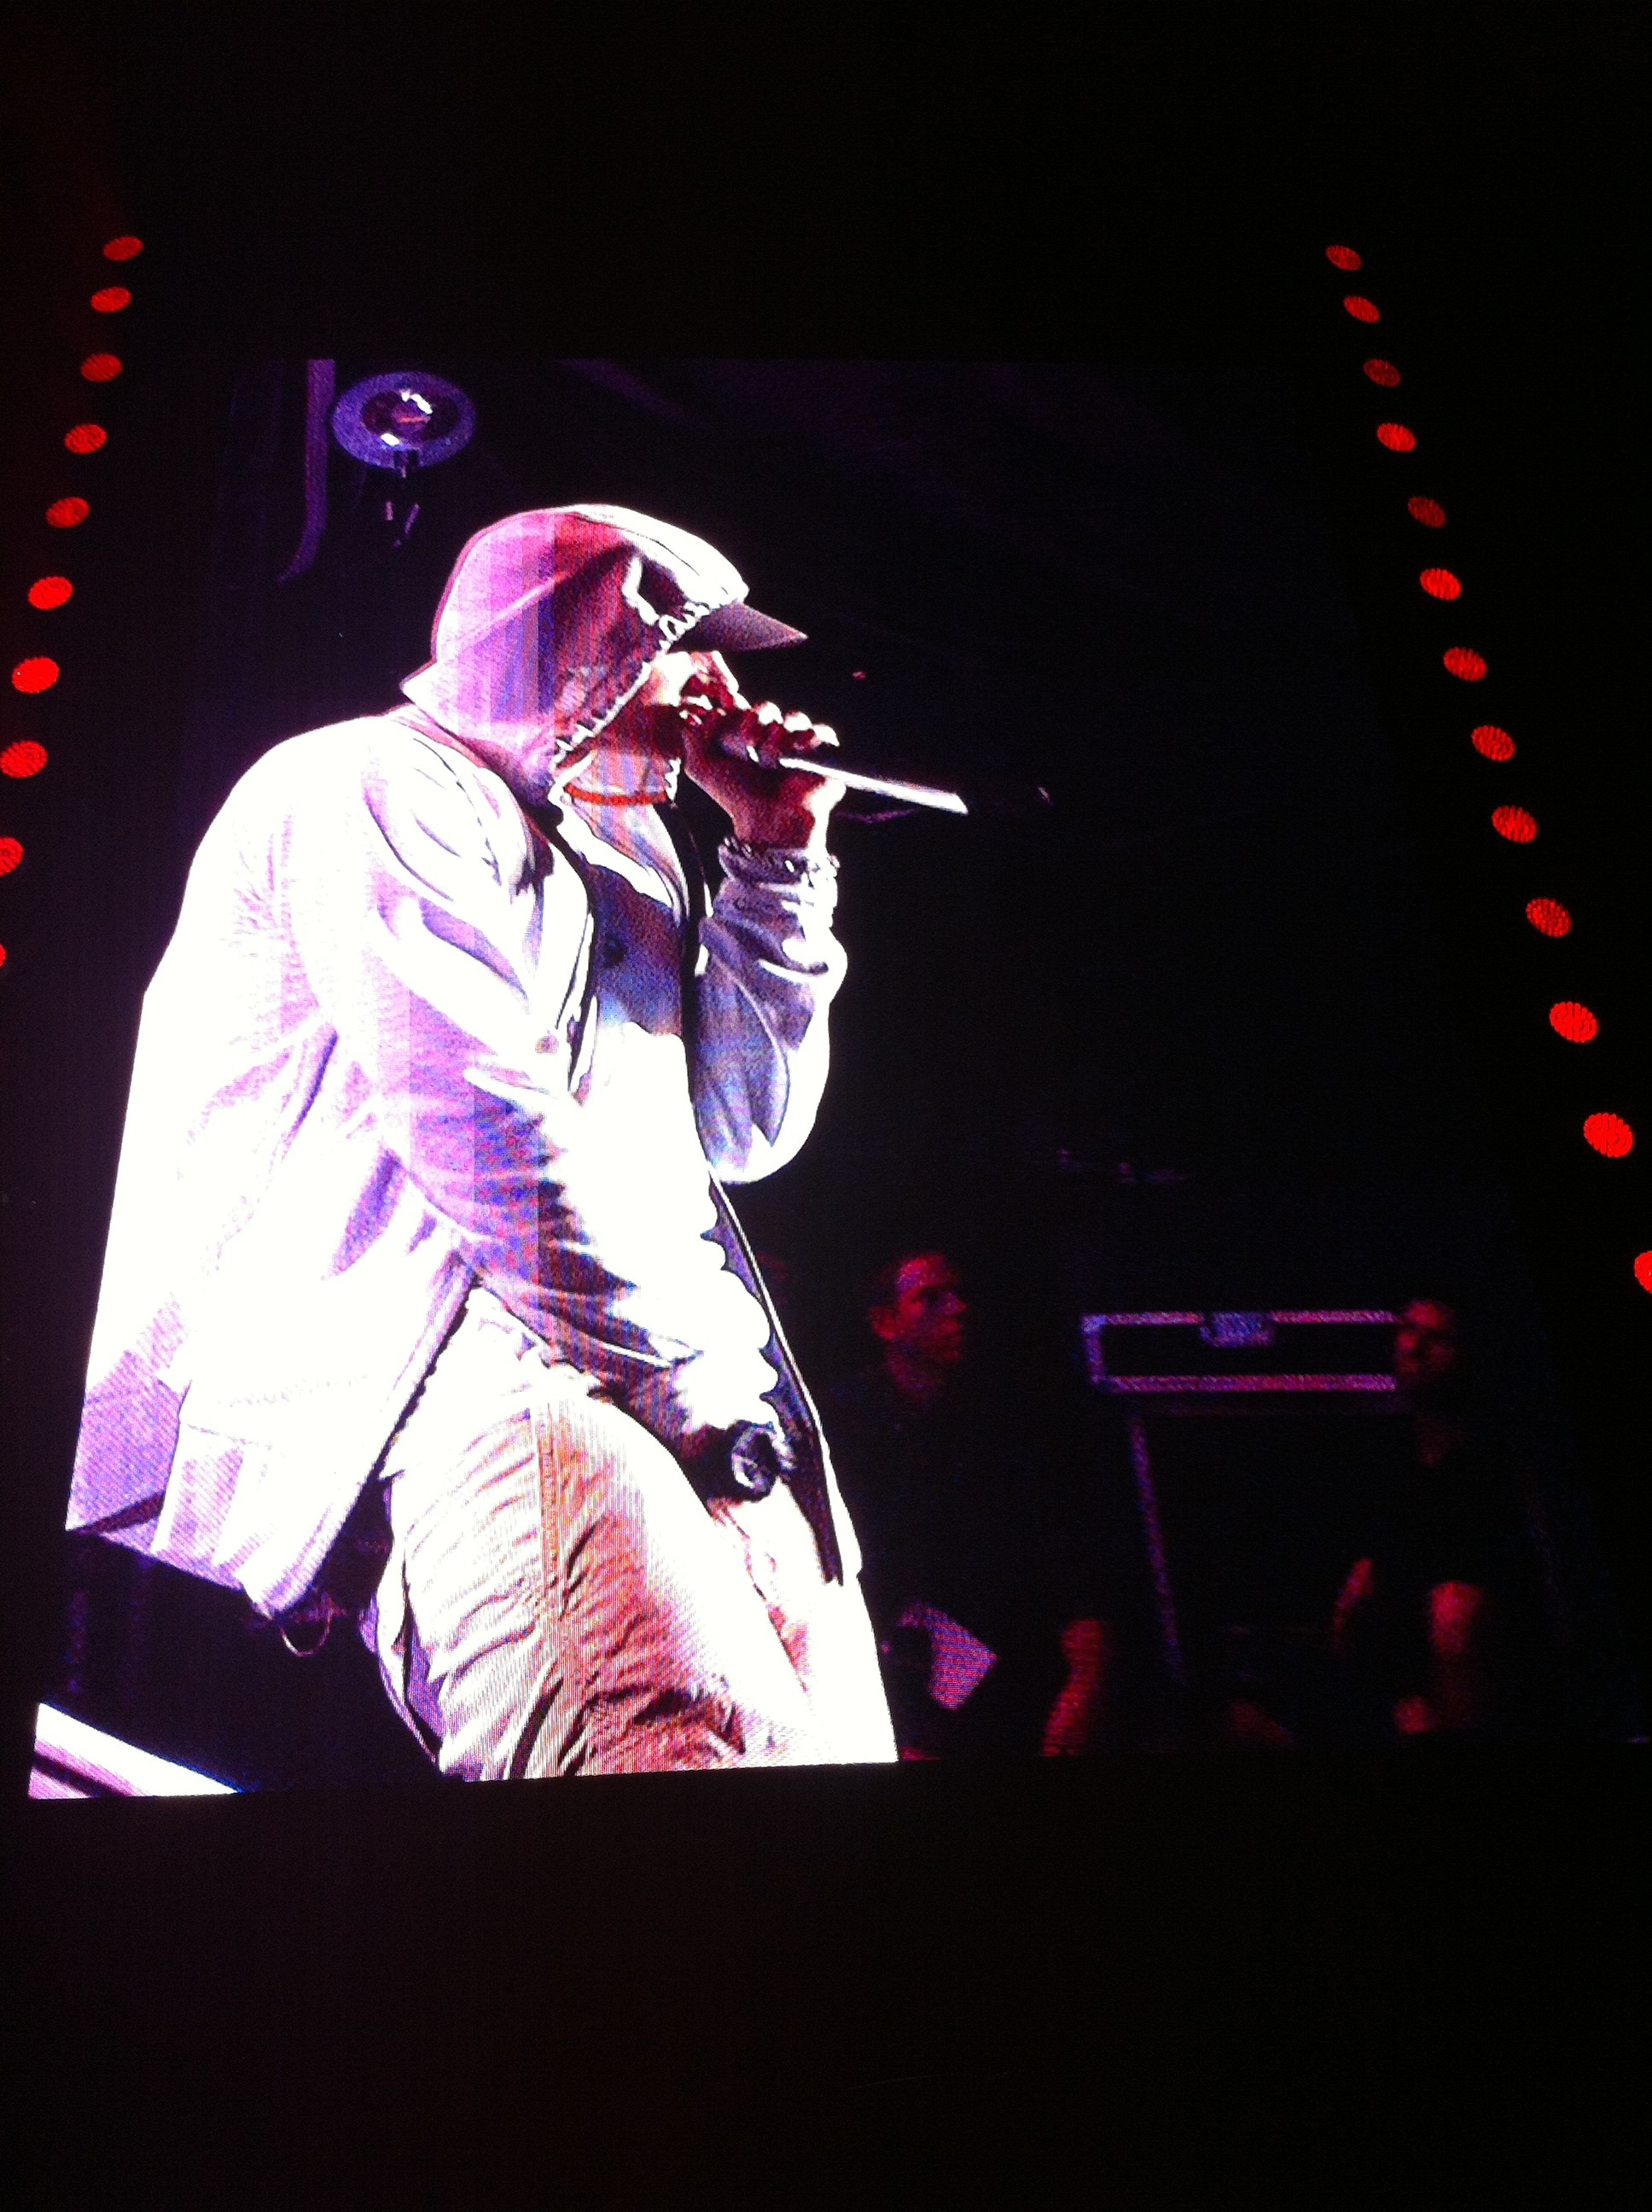 Eminem Stade de France | Eminem | Fan Site | Collection of ...